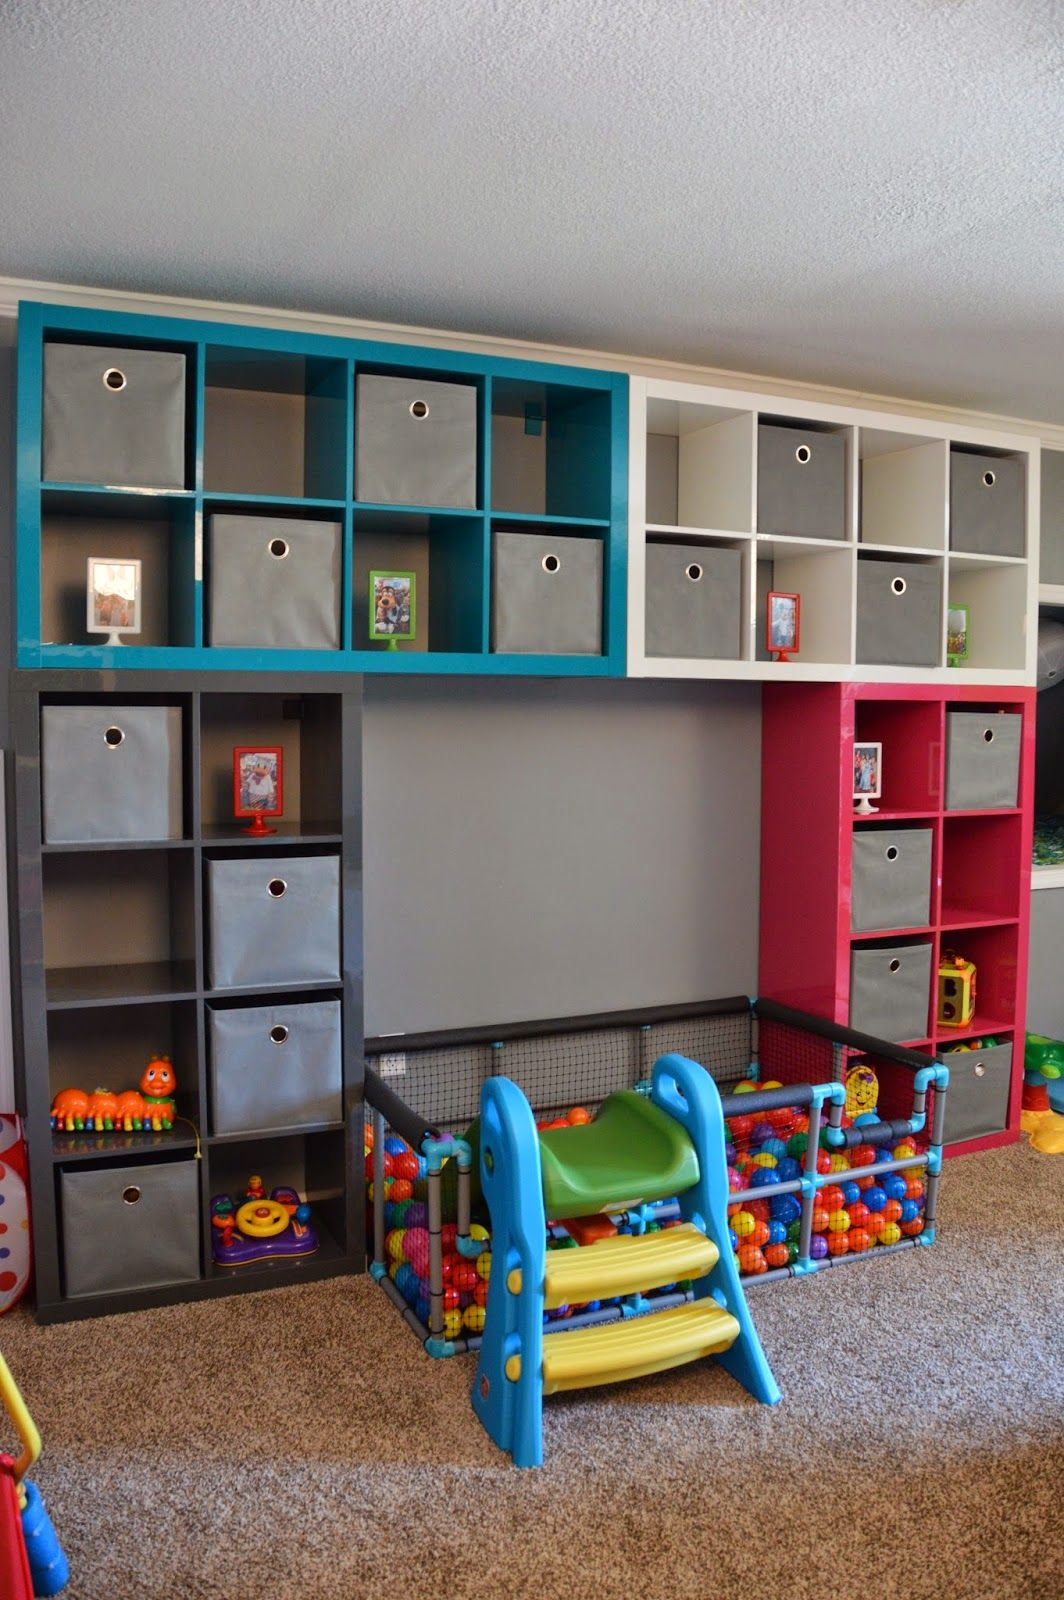 7+1 Toy Storage Ideas DIY Plans In A Small Space [Your